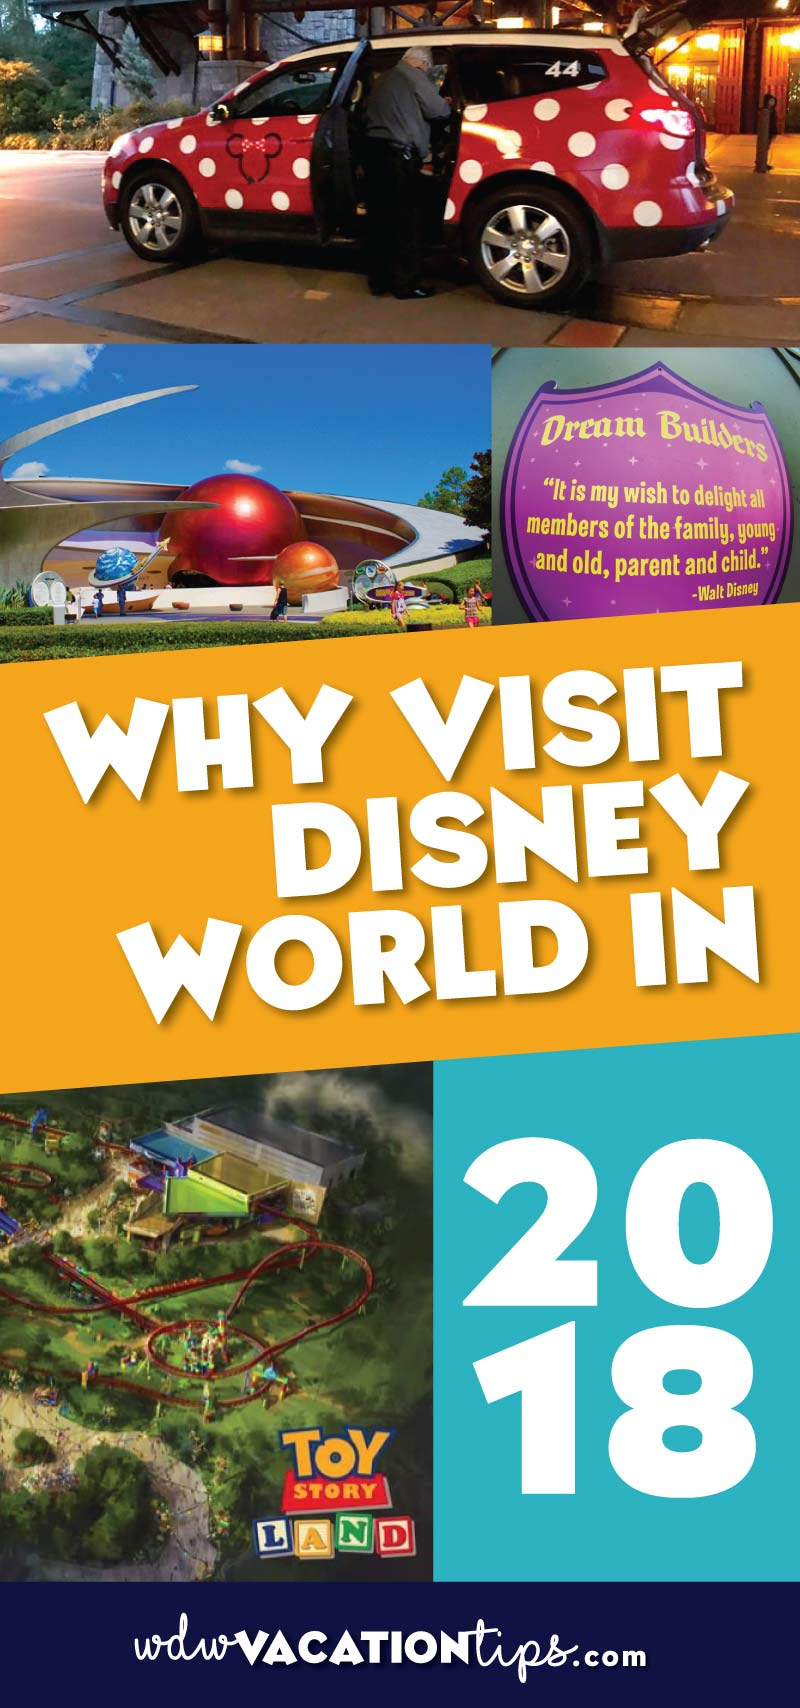 Thinking of just waiting until 2019 to visit Disney World when Star Wars land opens? You may want to reconsider, there are some really great reasons why you should visit Disney World in 2018.